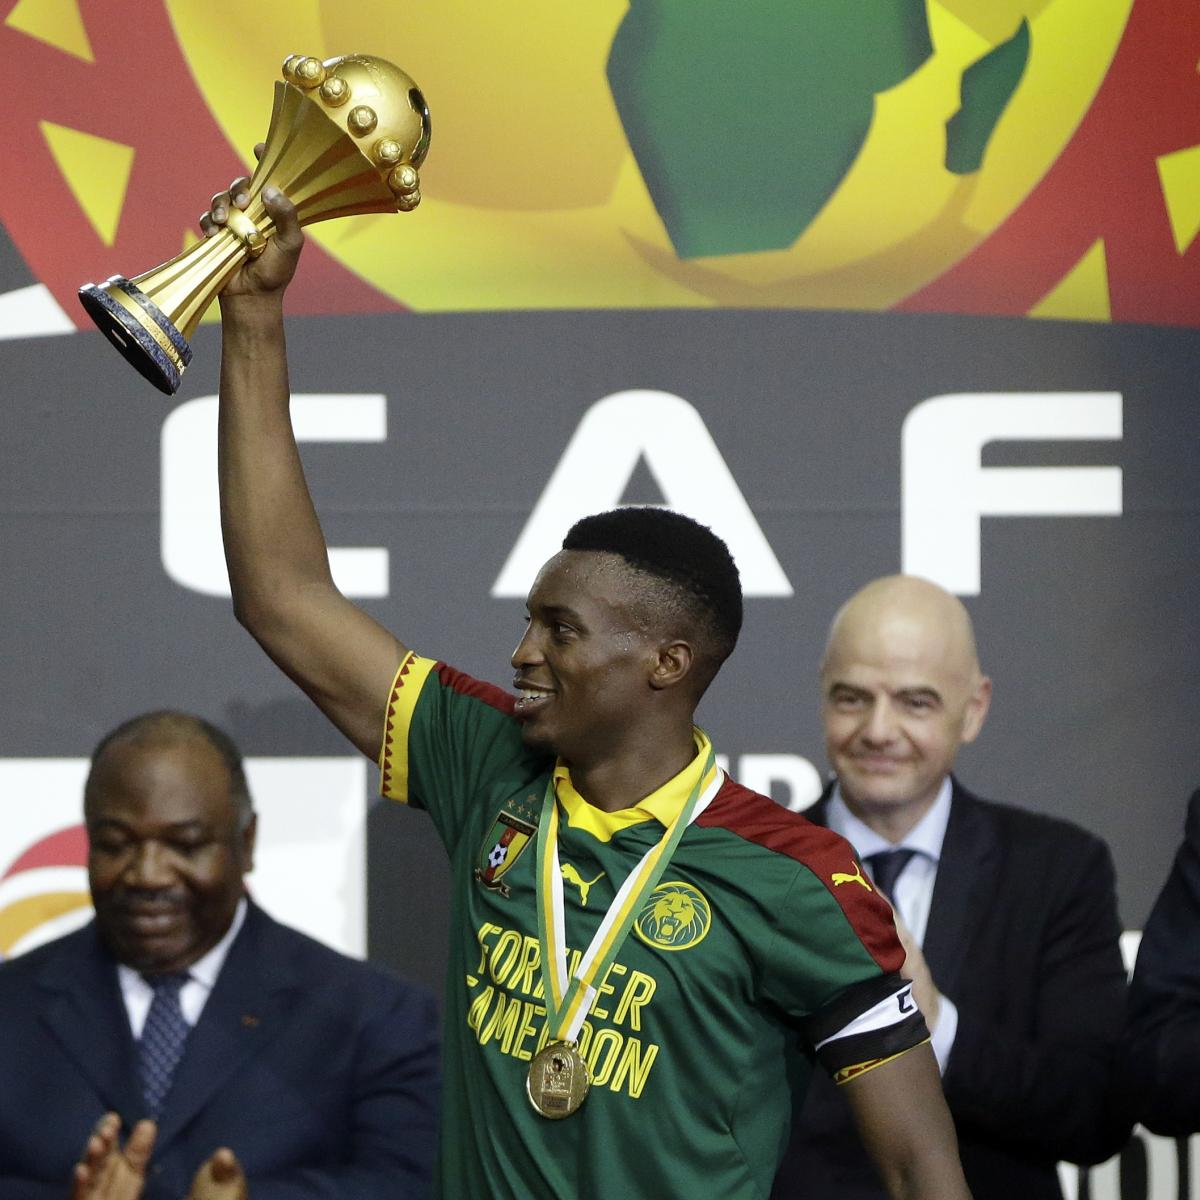 CHAN 2018: Dates, Draw Schedule, Live Stream and Predictions